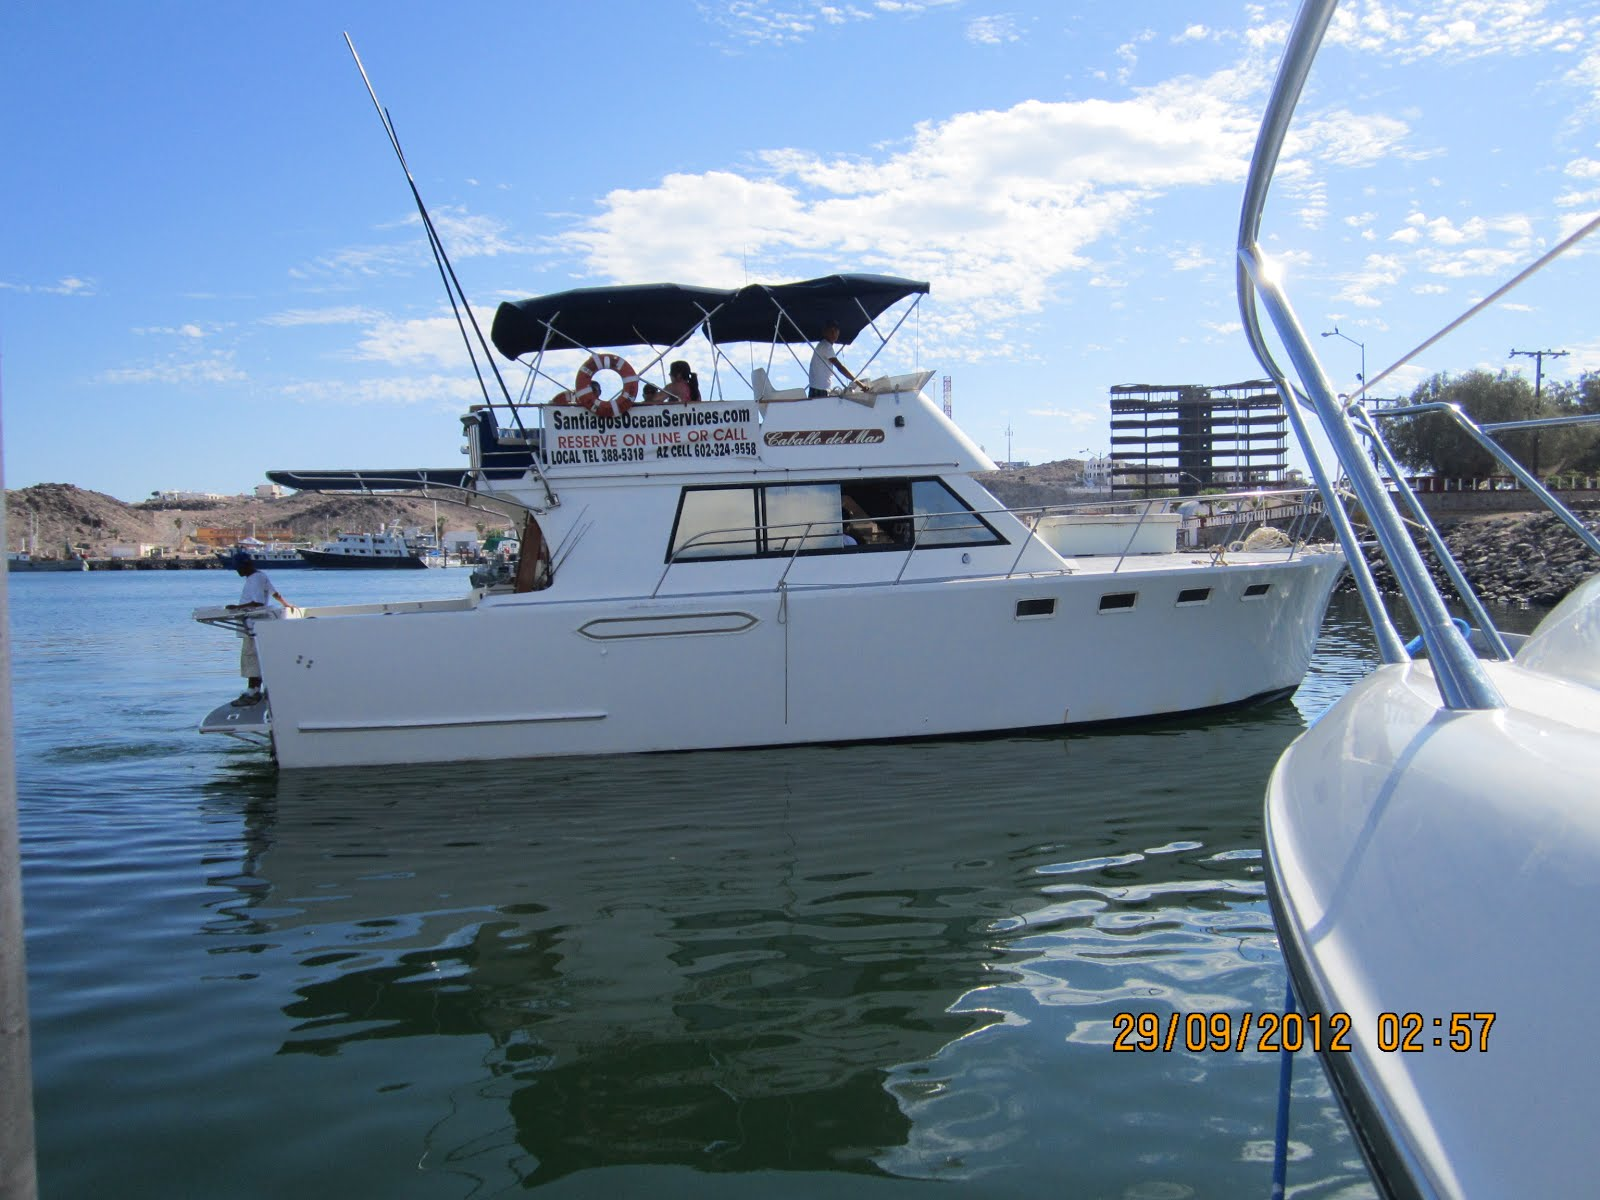 Fishing in rocky point fishing boat caballo del mar at for Rocky point fishing charters